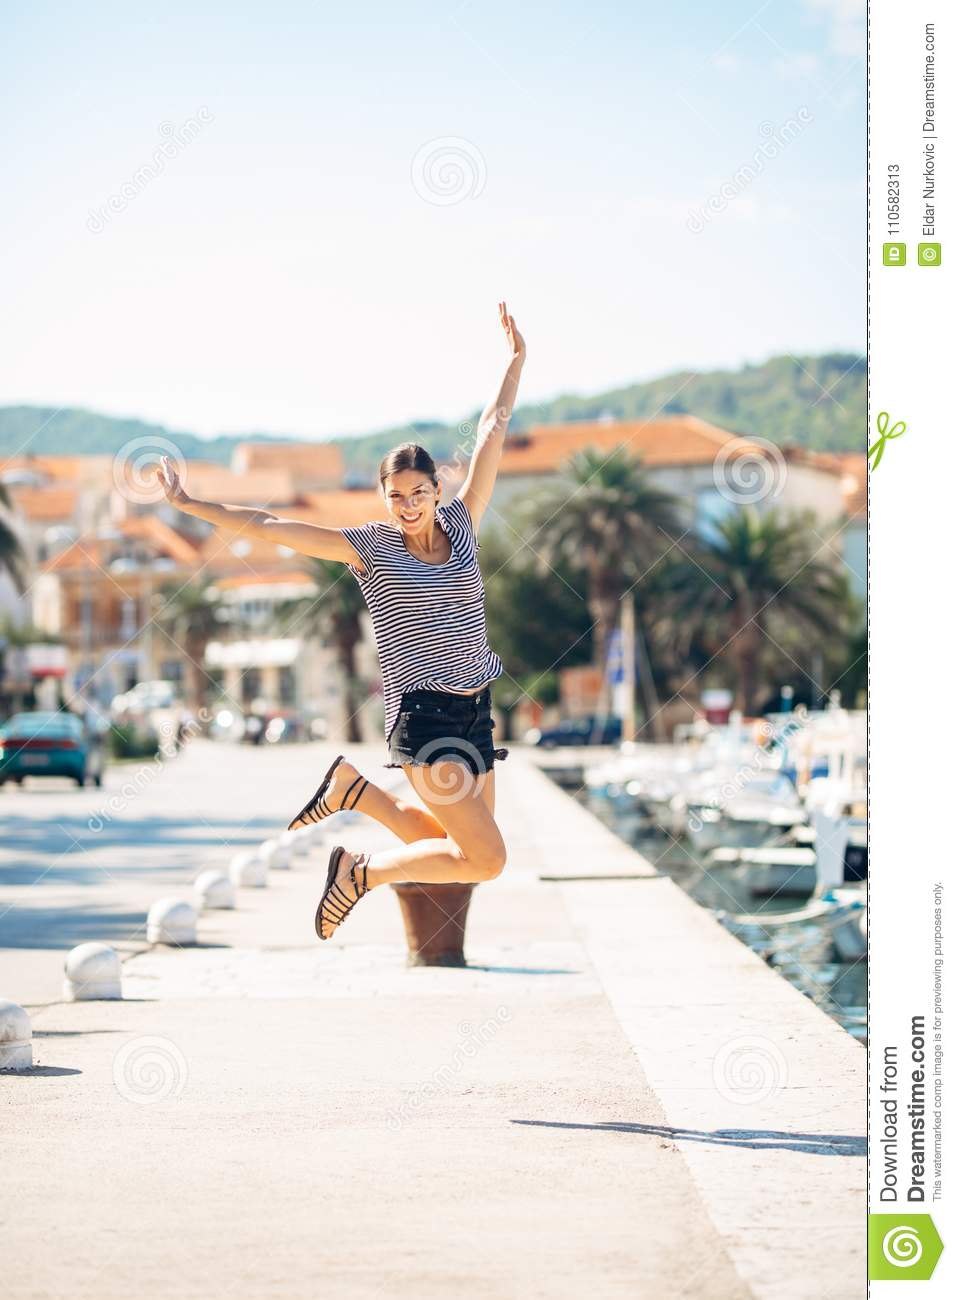 Over exited happy woman jumping in the air out of happiness. Vacation time concept. Seaside coastal vacation excitement. Woman in